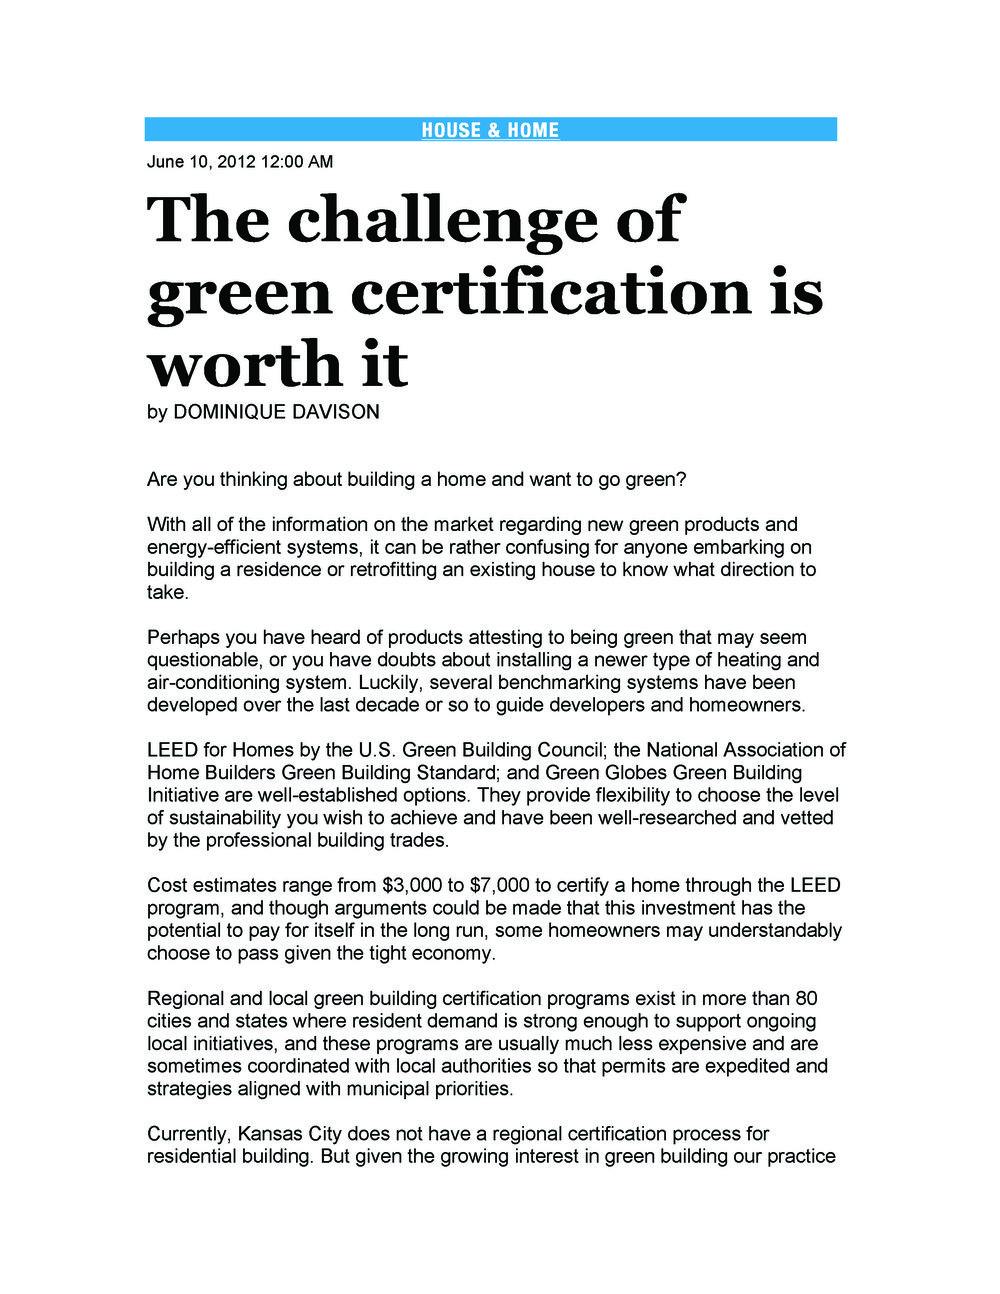 KCStar_2012_GreenCertification_DominiqueDavison_Page_1.jpg